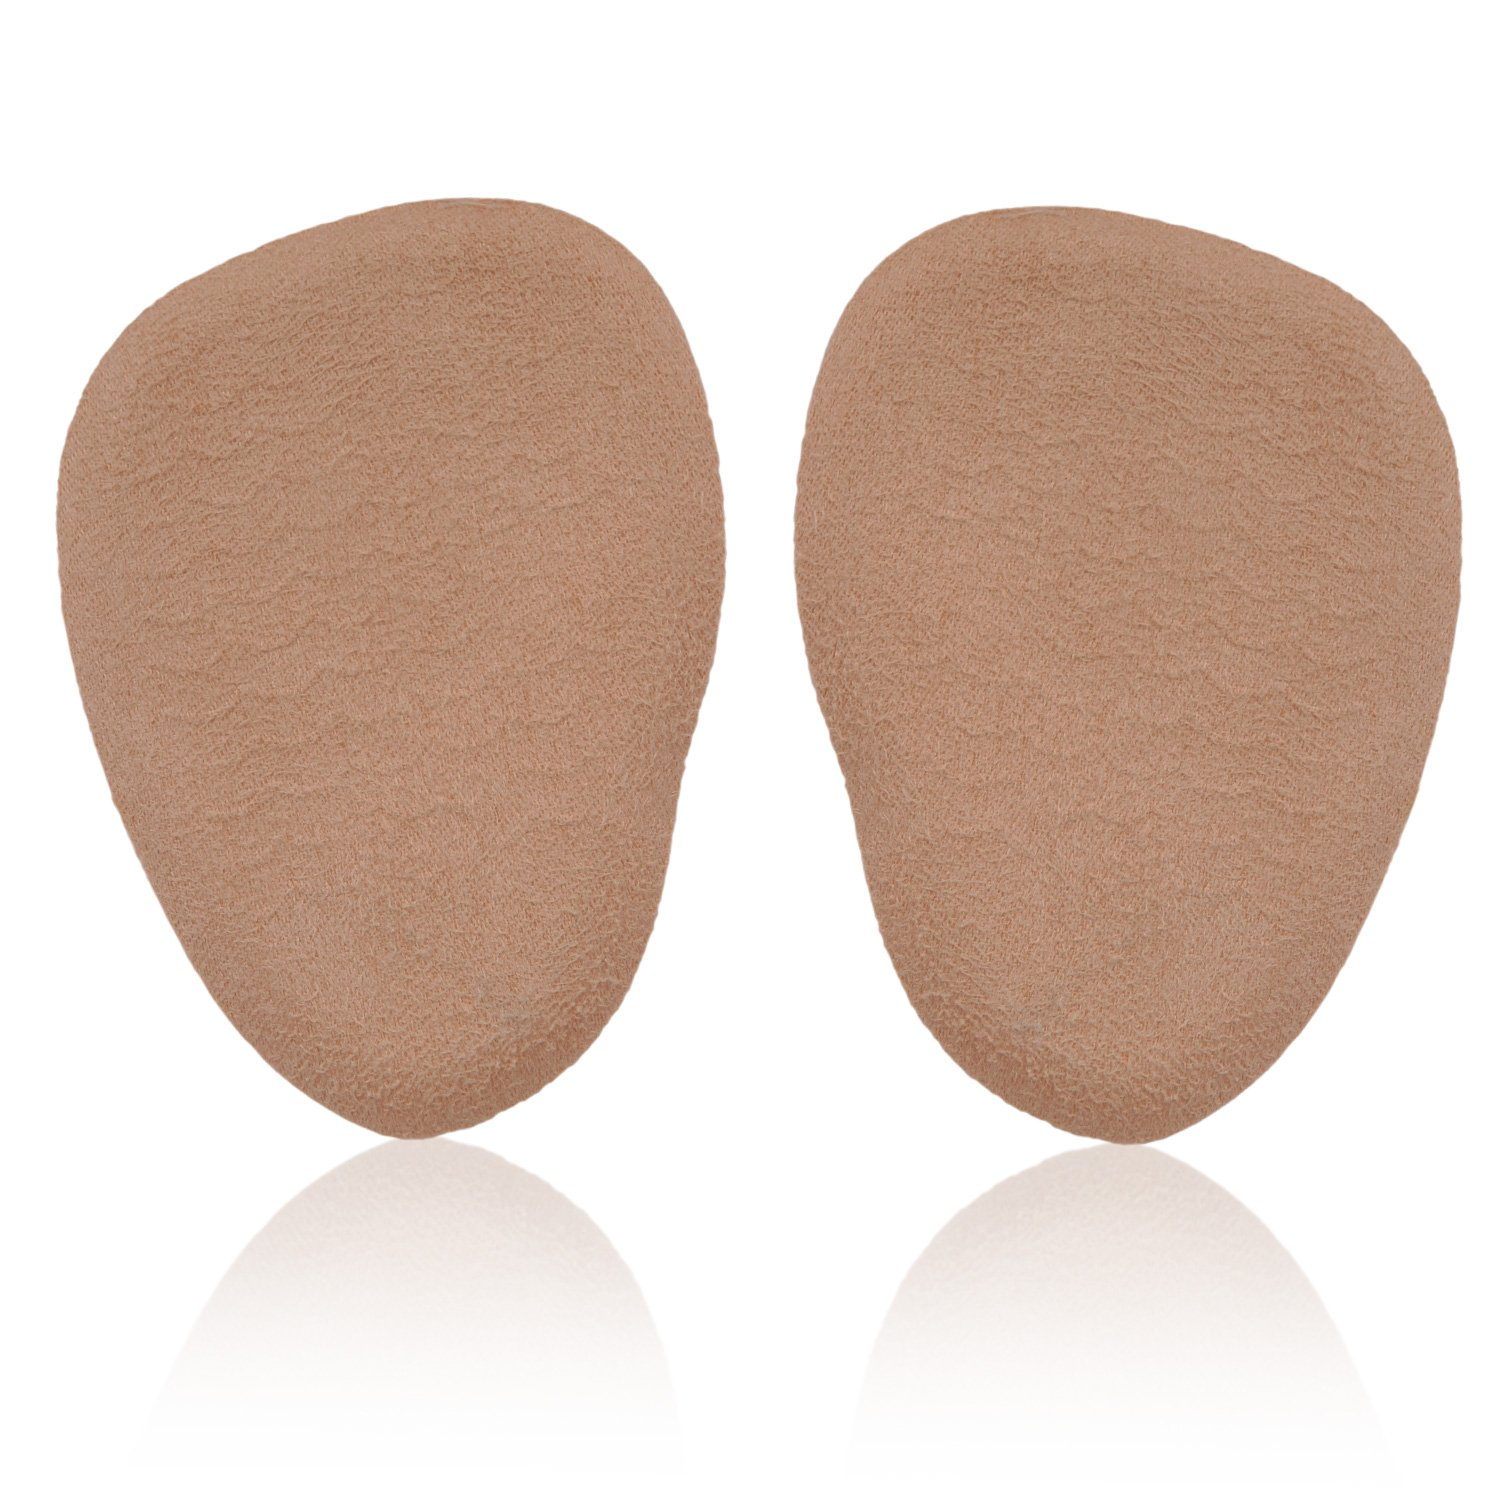 Mintfoot Felt Metatarsal Pads - 2 Pieces - Fabric Covered Foot Cushions - One Size - Rapid Pain Relief